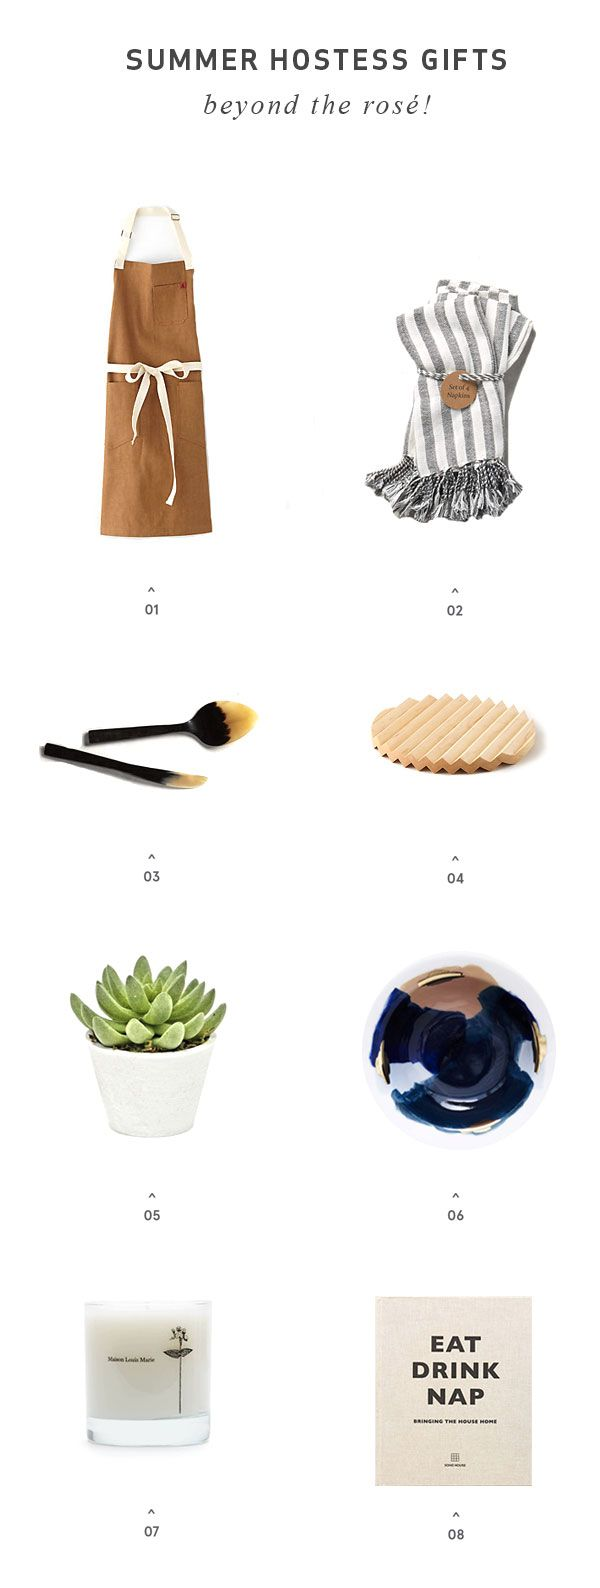 Party Guest This Weekend? 8 Unique Summer Hostess Gifts